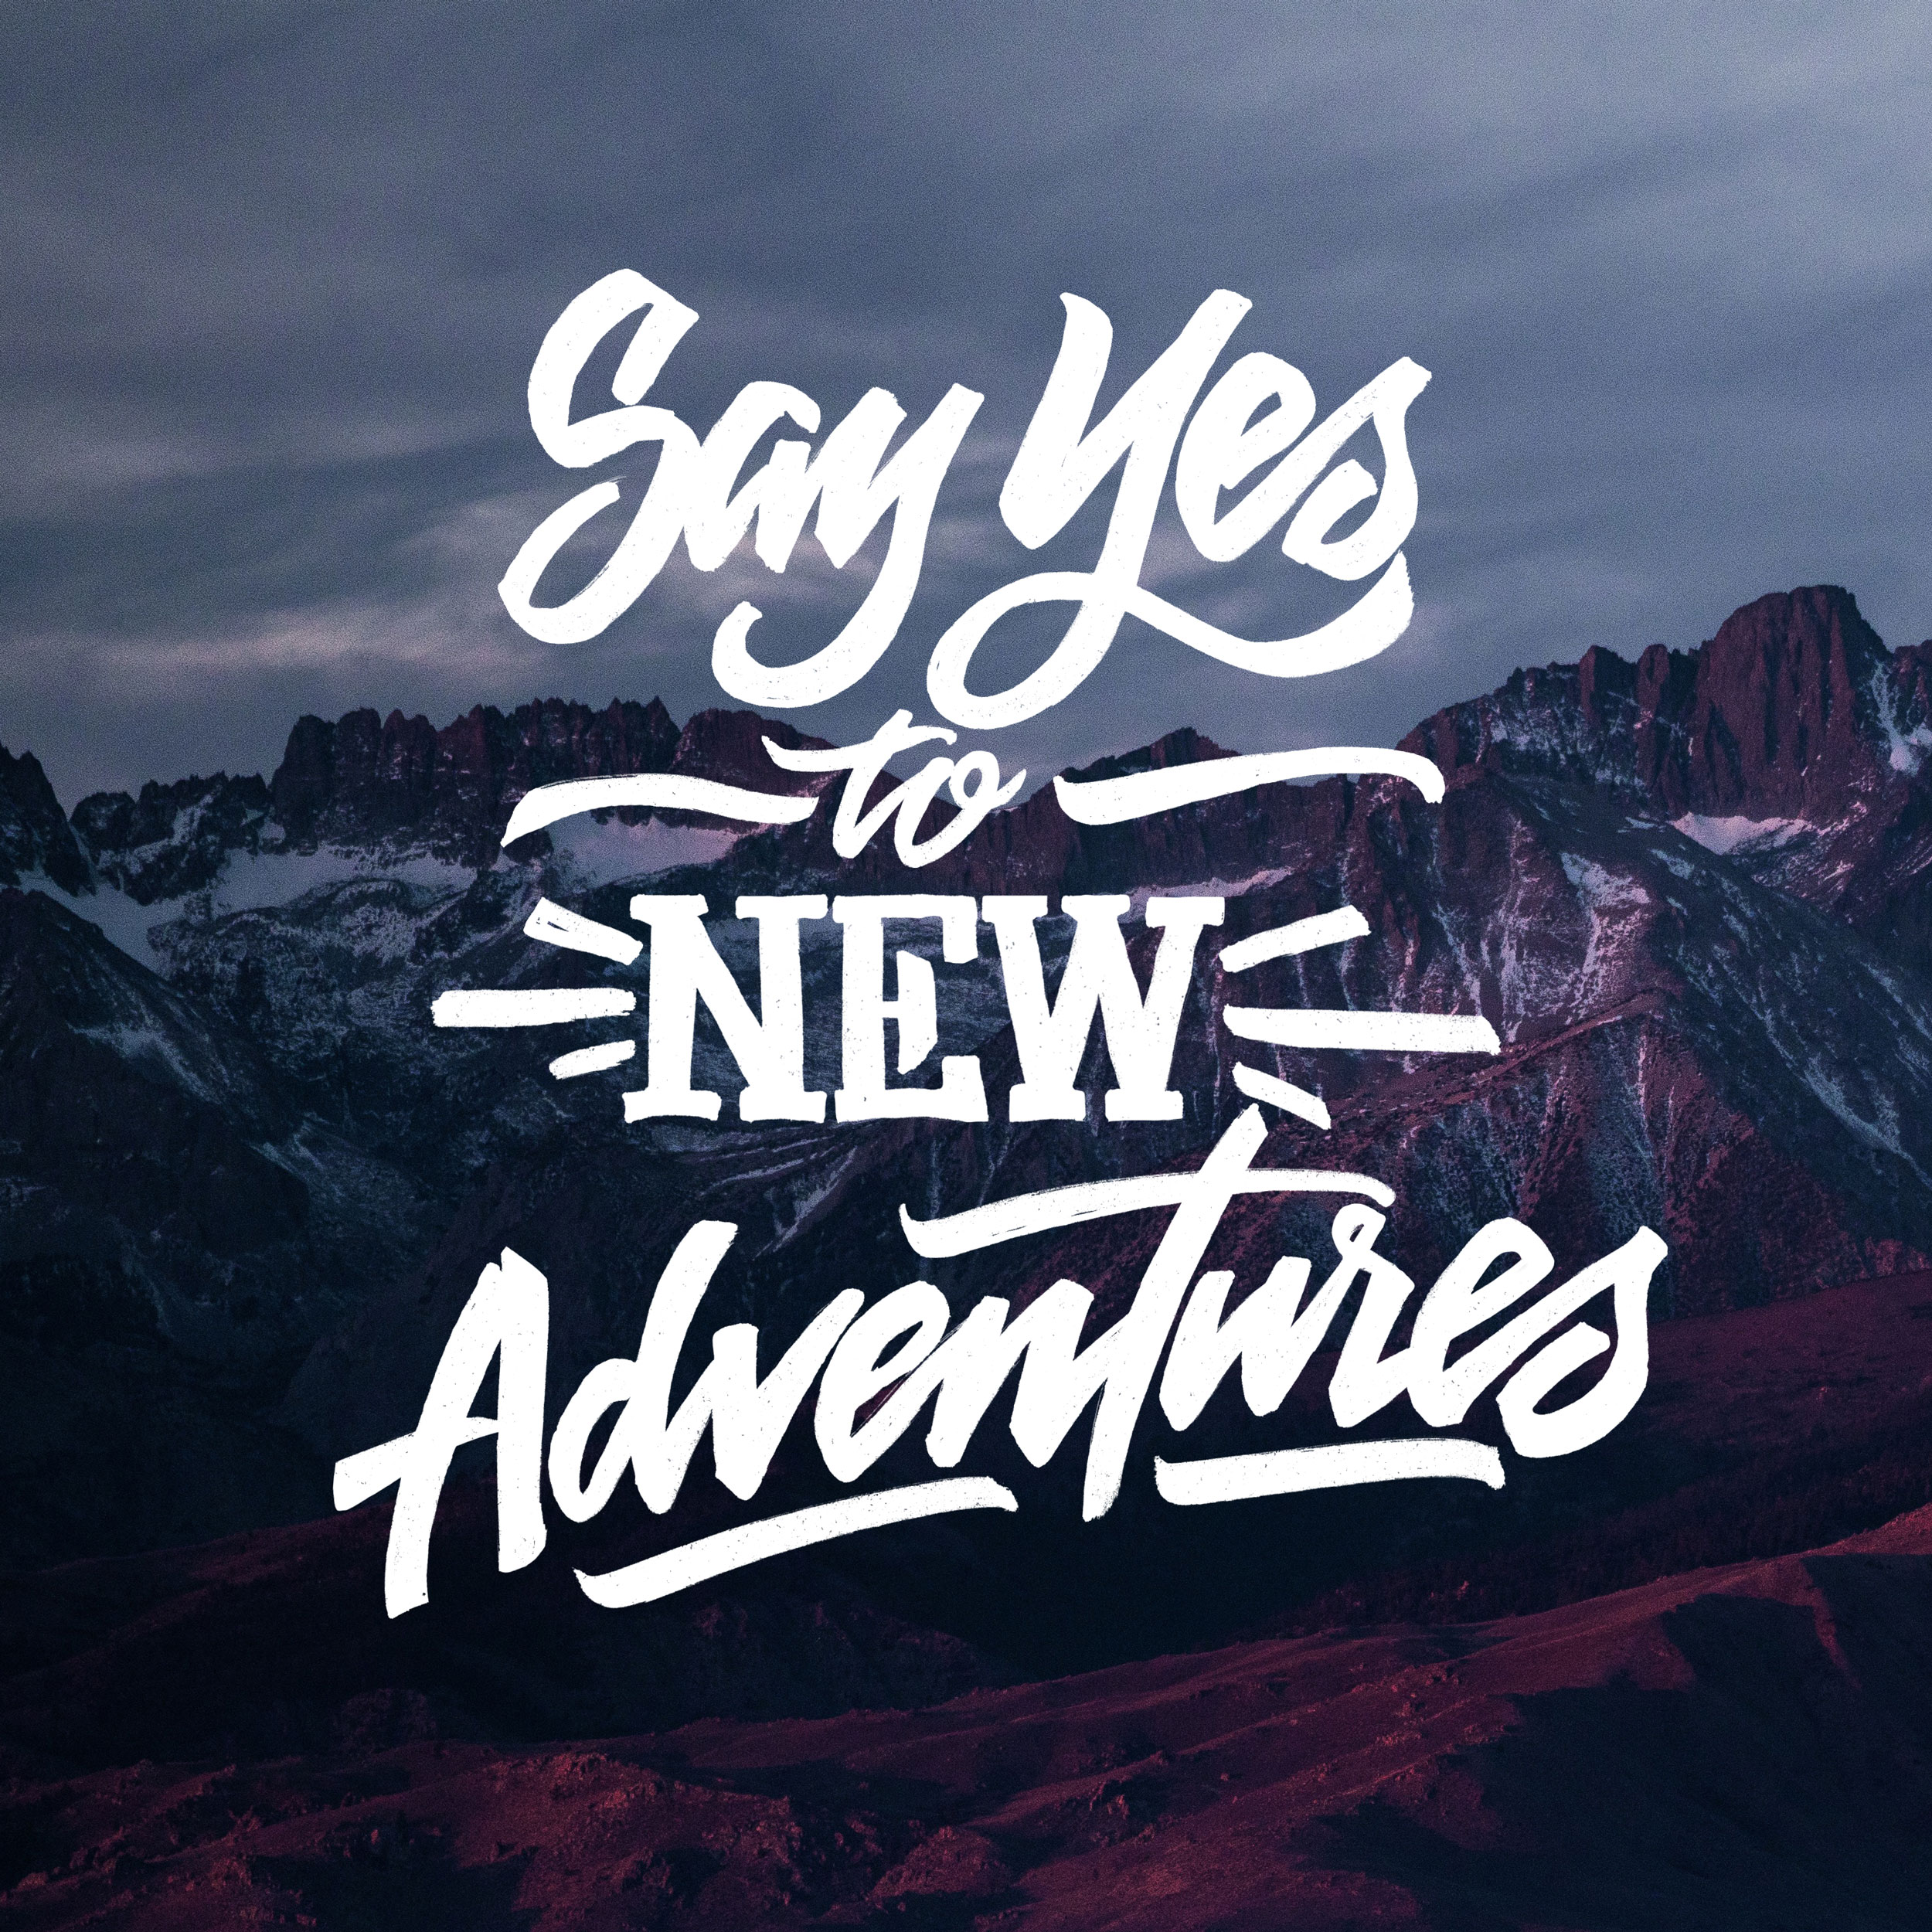 say yes to new adventures john suder.jpg